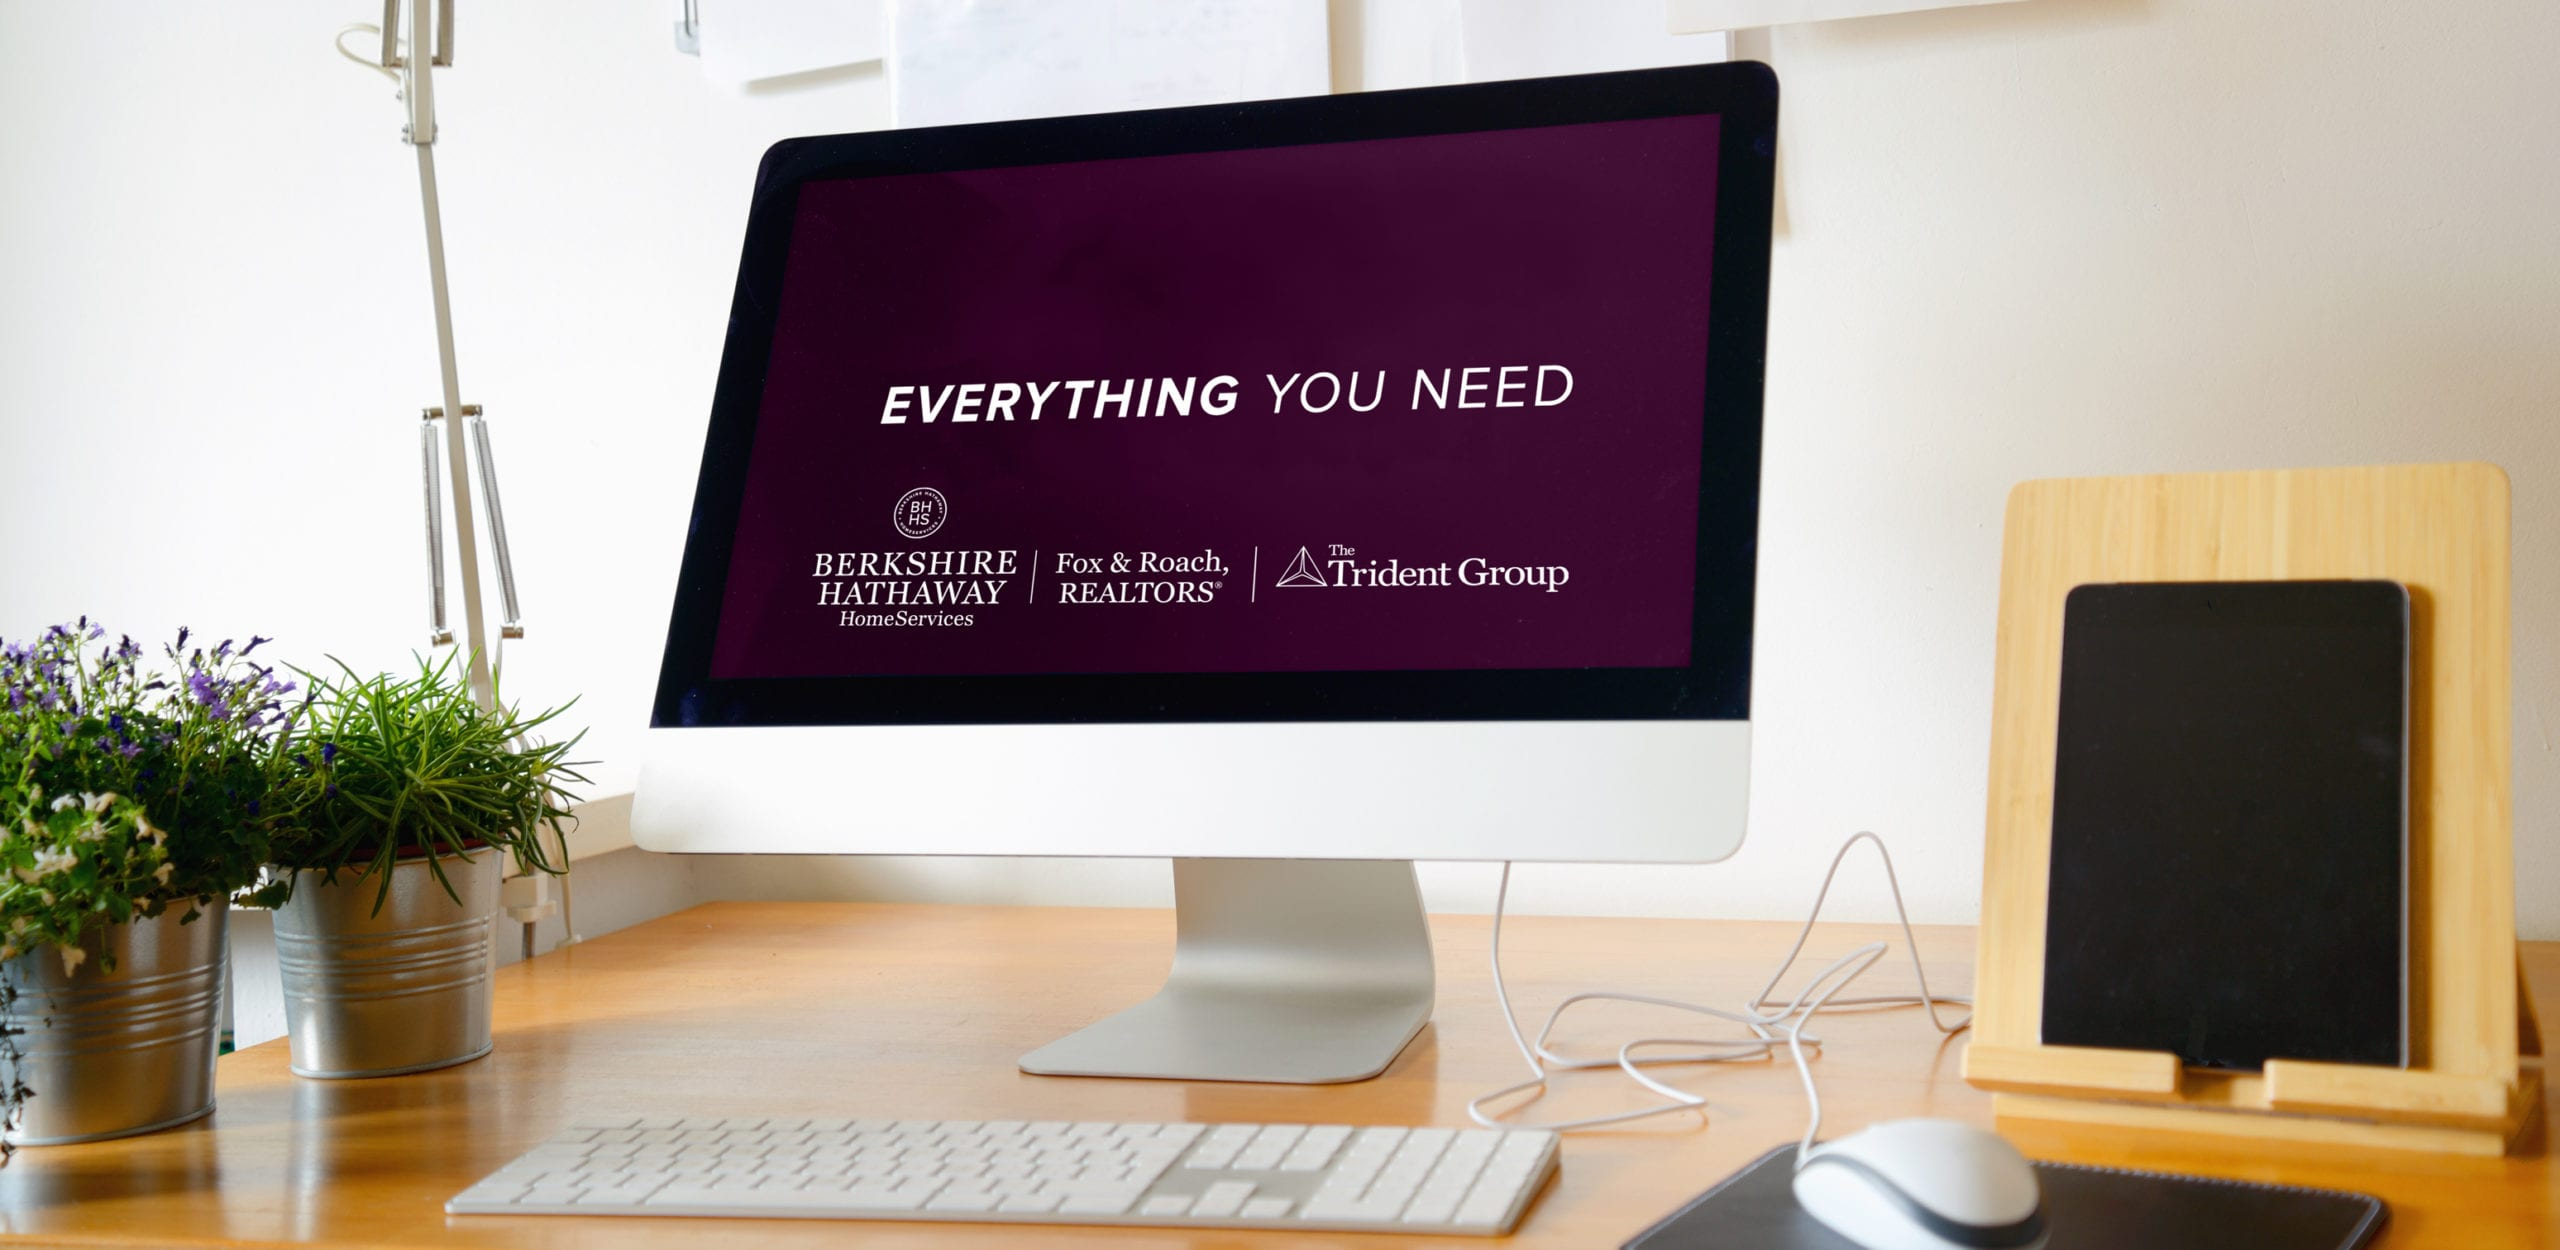 Berkshire Hathaway HomeServices Fox & Roach, REALTORS® Launches the Virtual Home Advisor System